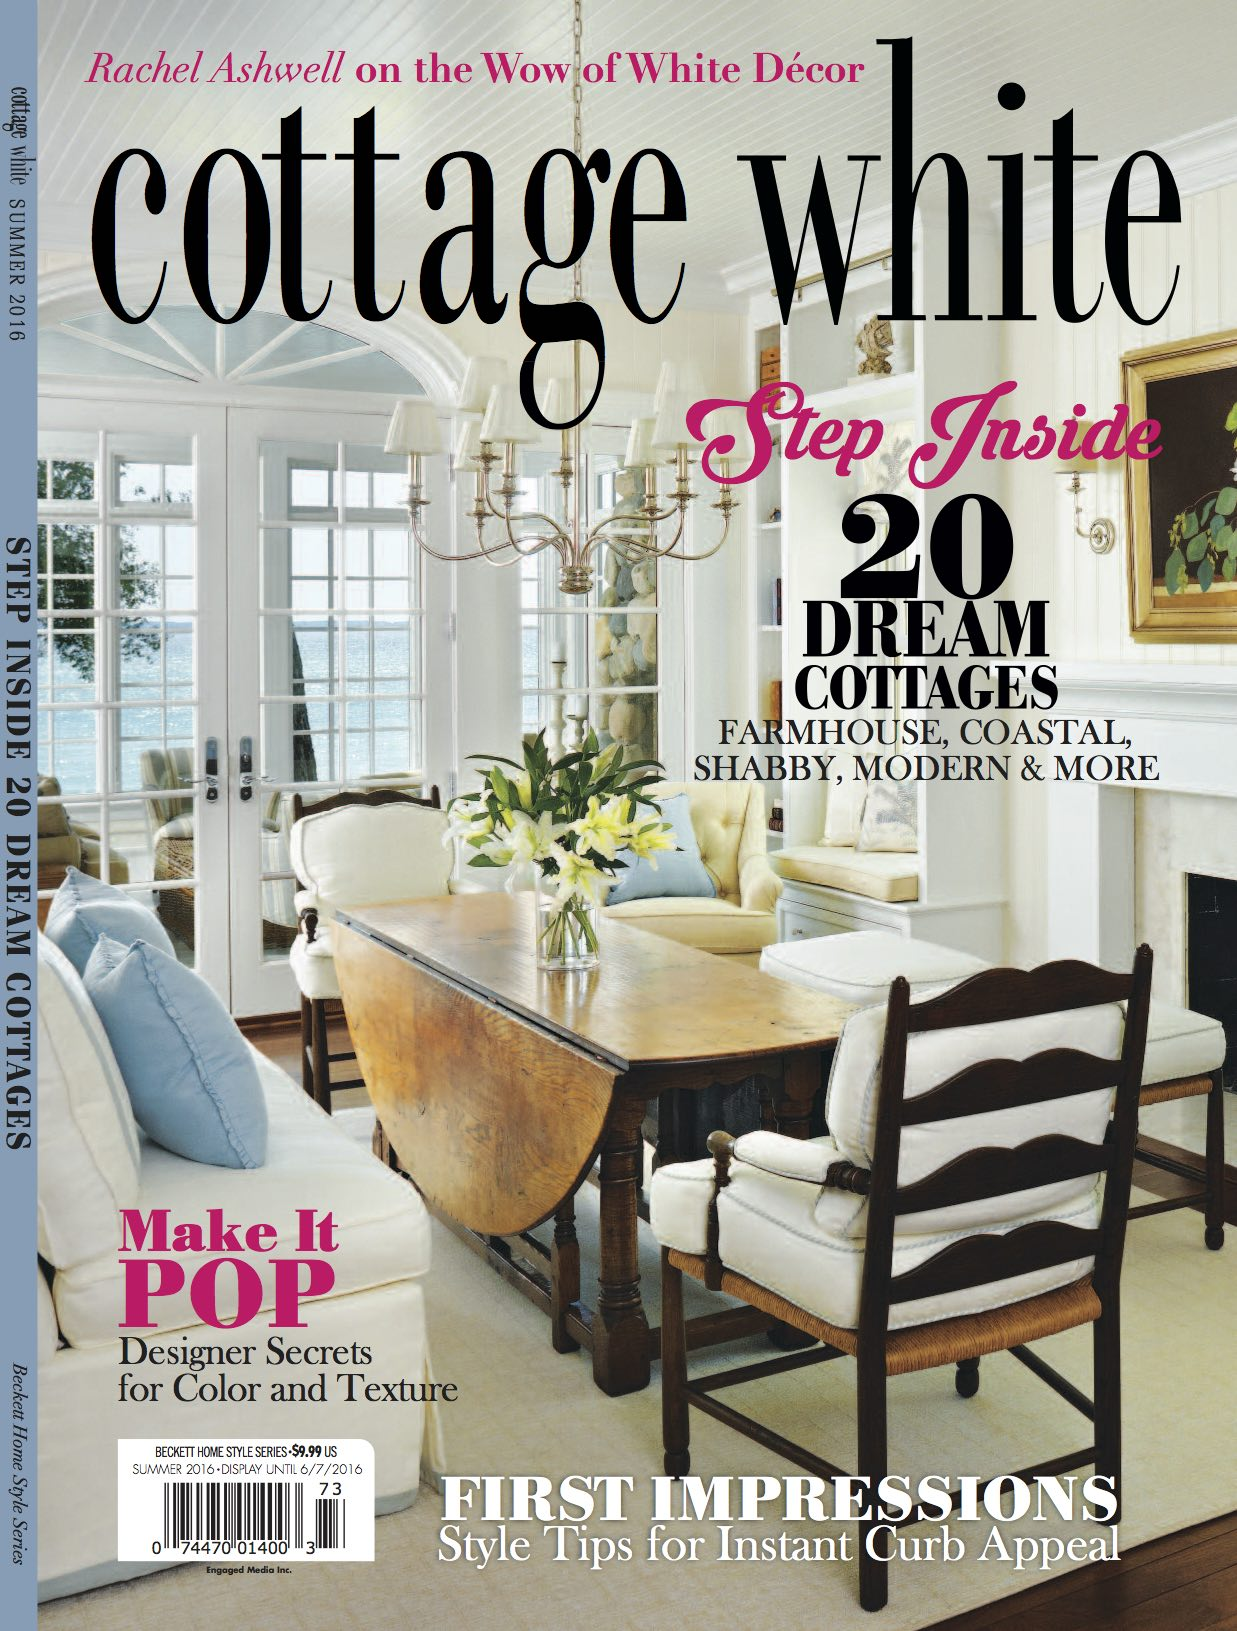 The Four Best Whites for your Open Plan House | Maria Killam